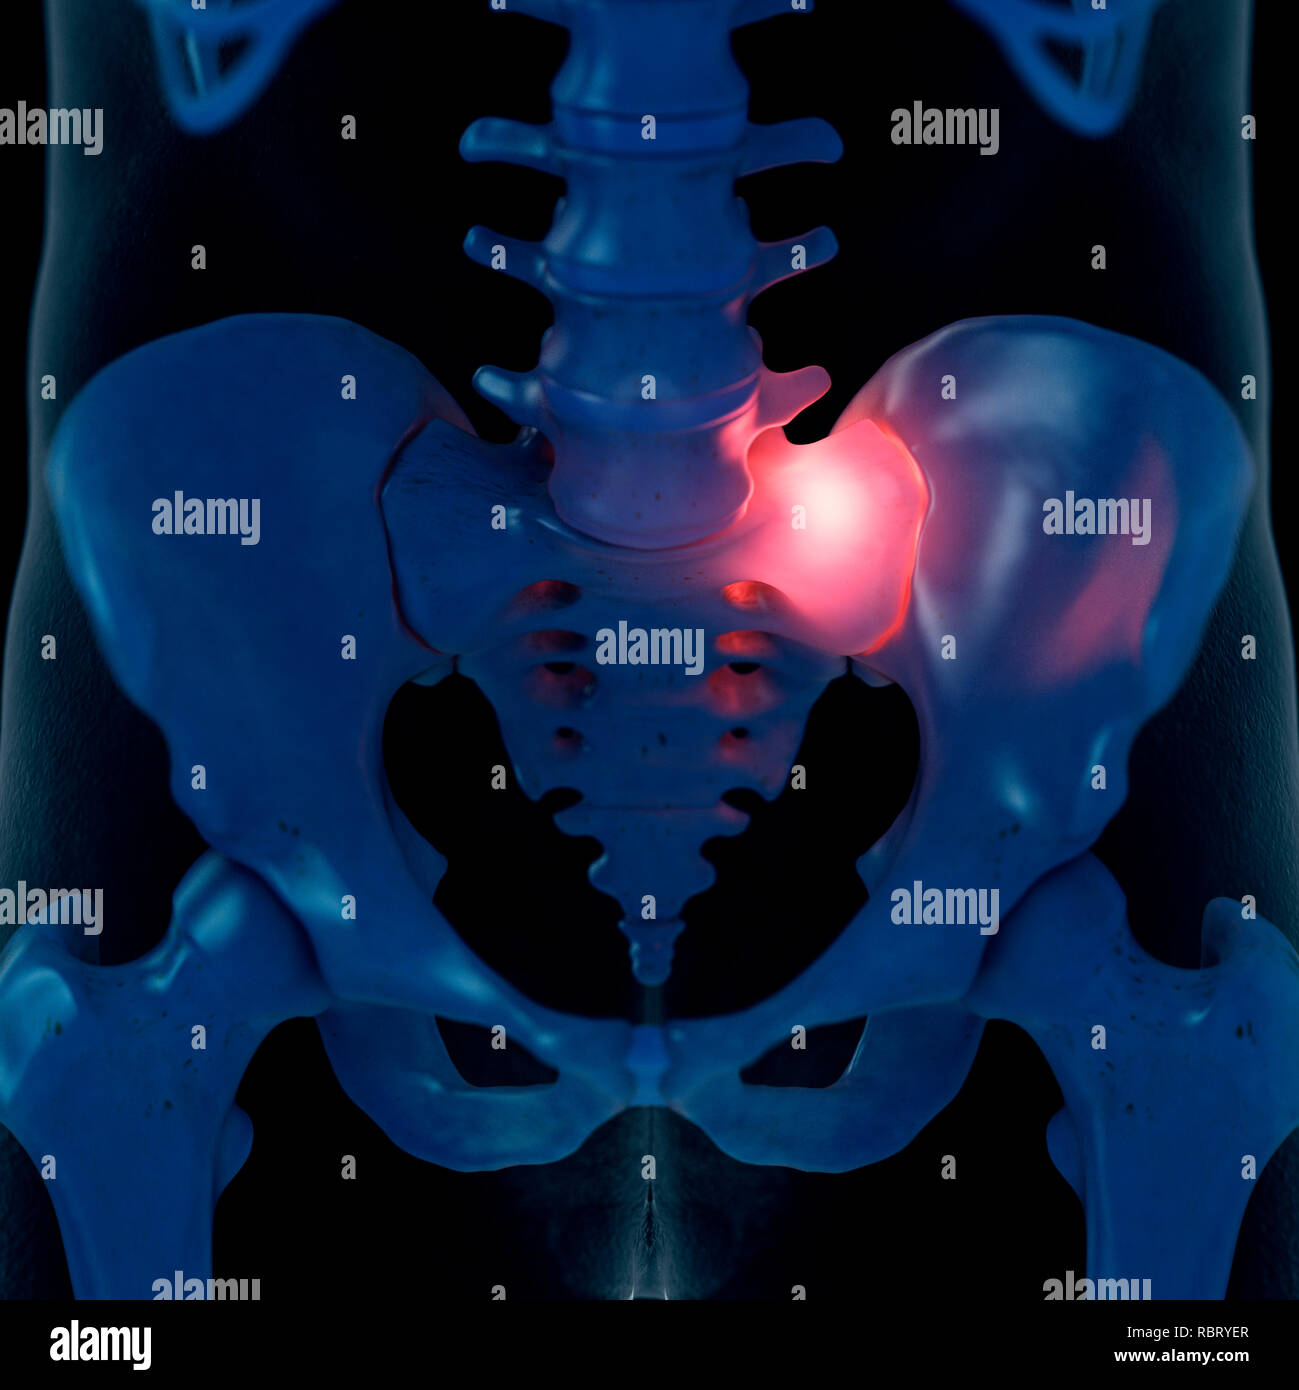 Illustration of a painful sacrum joint. - Stock Image